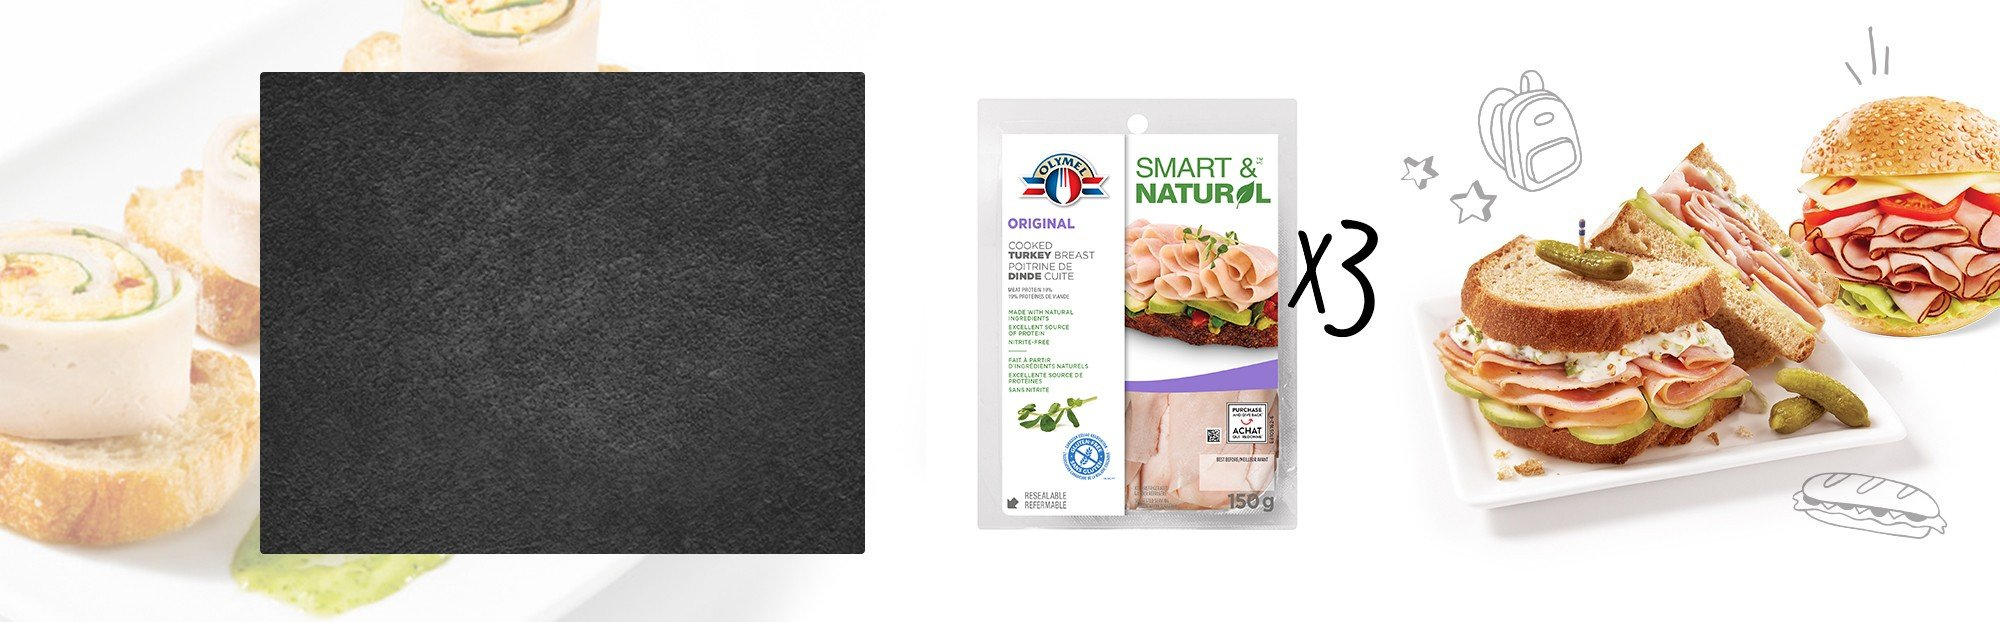 Shaved Cooked Turkey Breast Olymel Smart & Natural - Tri Pack